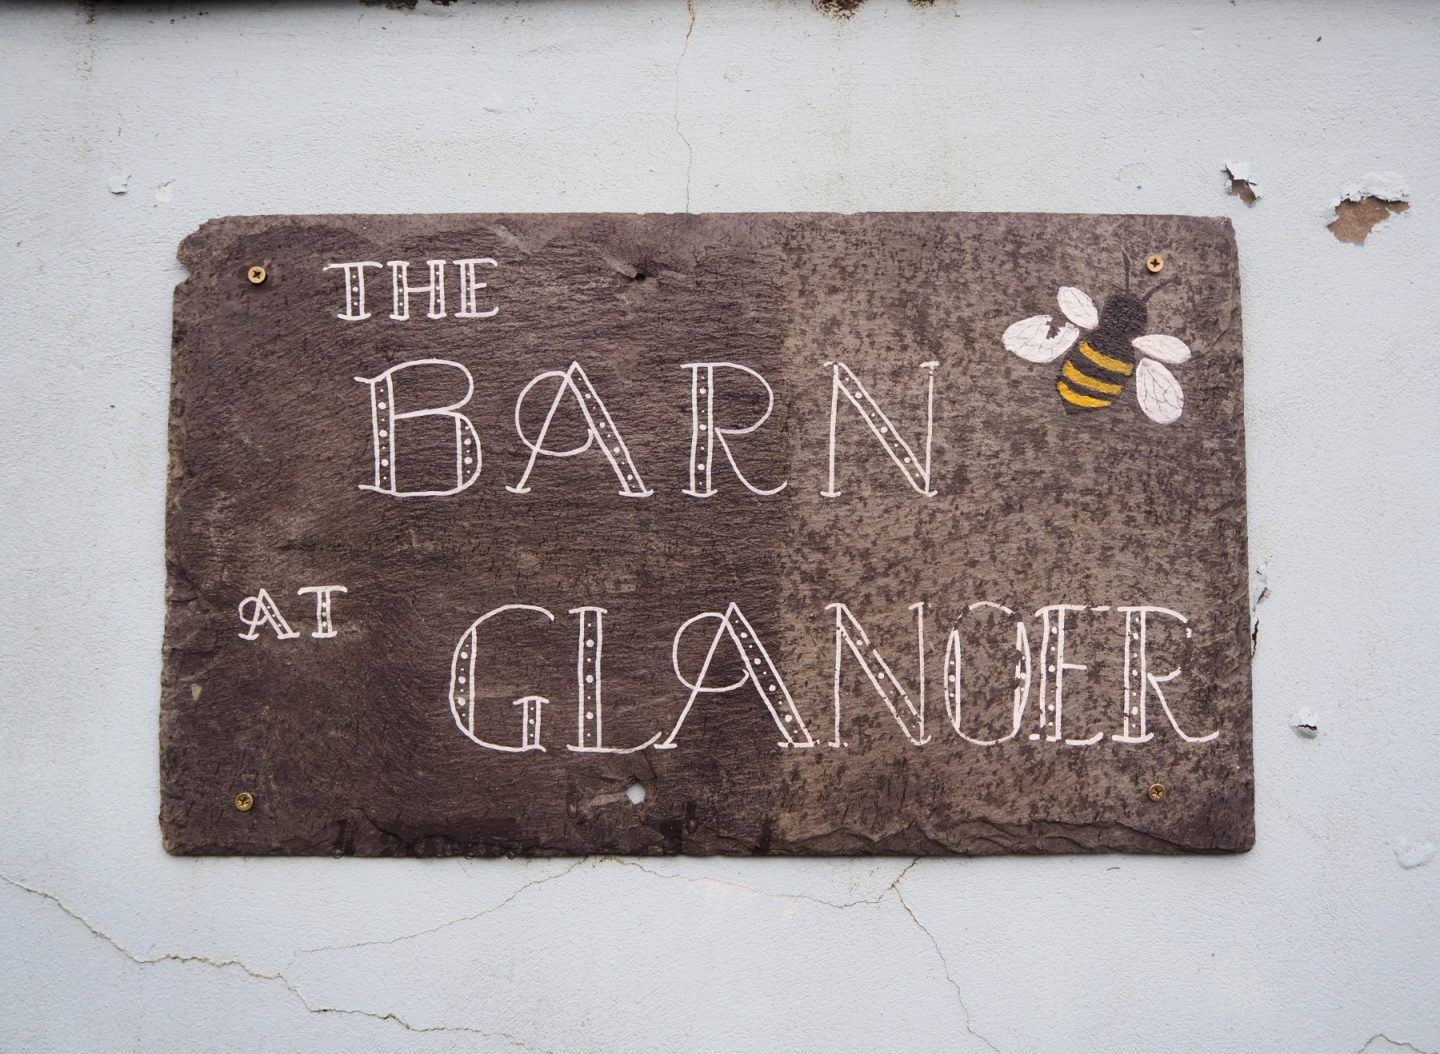 The barn at Glanoer - house sign